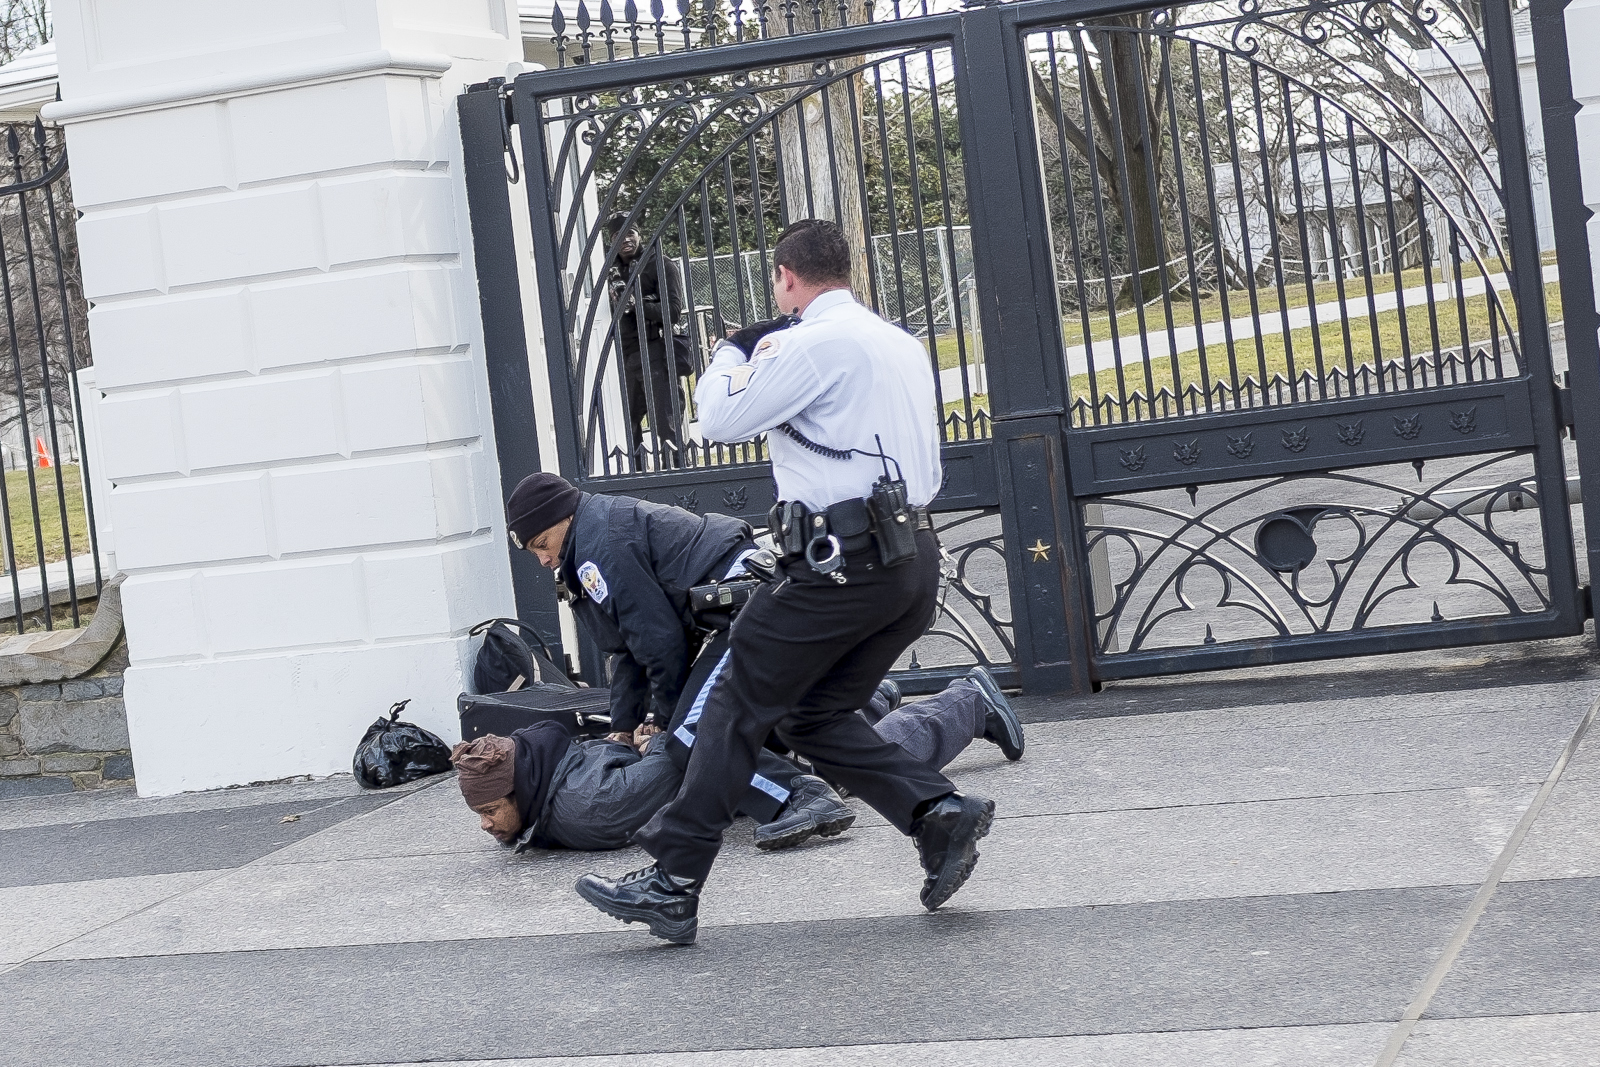 Man Attempts To Scale White House Fence